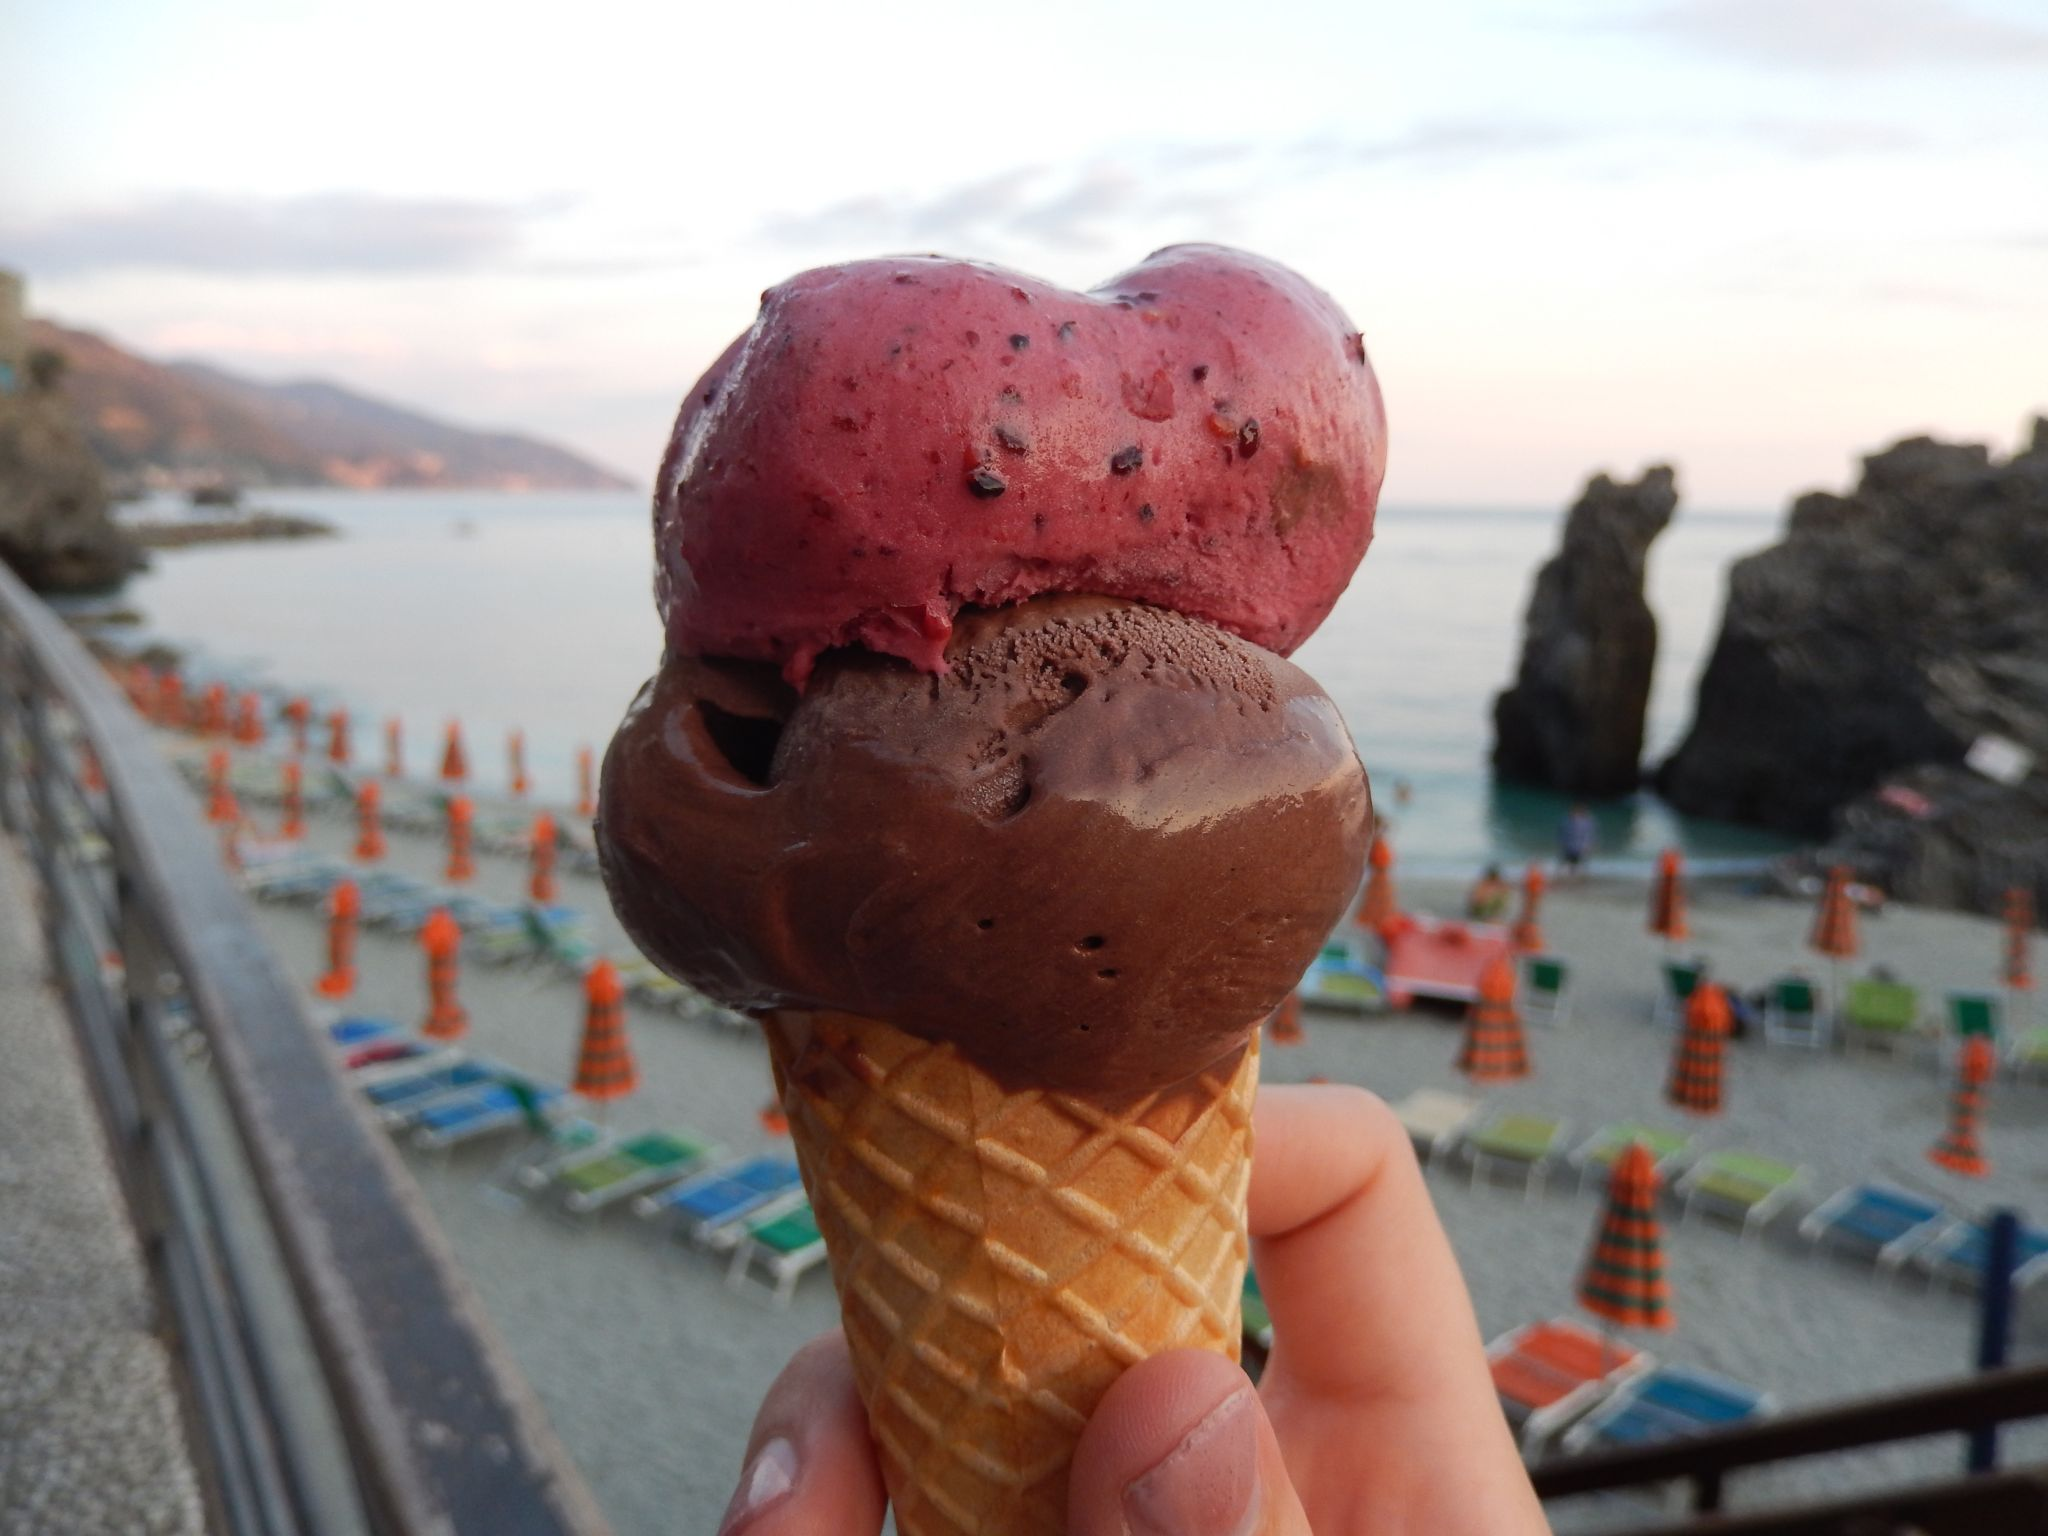 https://www.footlooselemonjuice.com/wp-content/uploads/2018/09/Advice-on-Living-in-Italy-Ice-cream.jpg